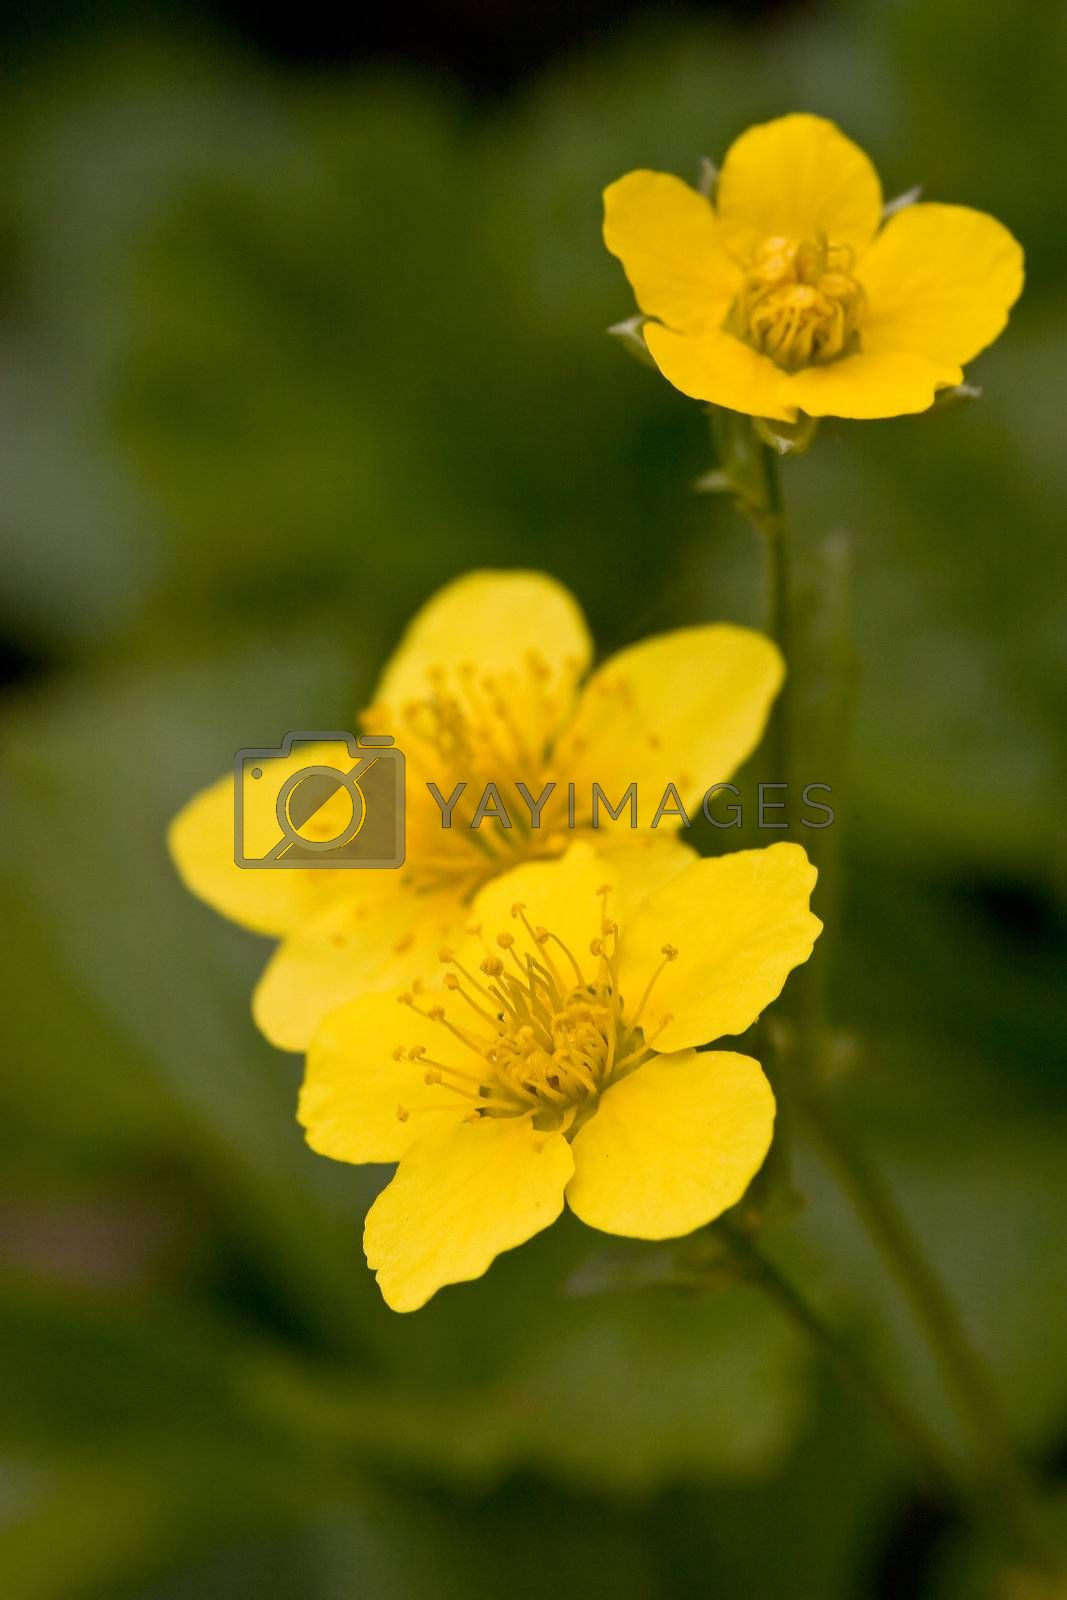 Three yellow flowers on a natural green background. Shallow depth of field.